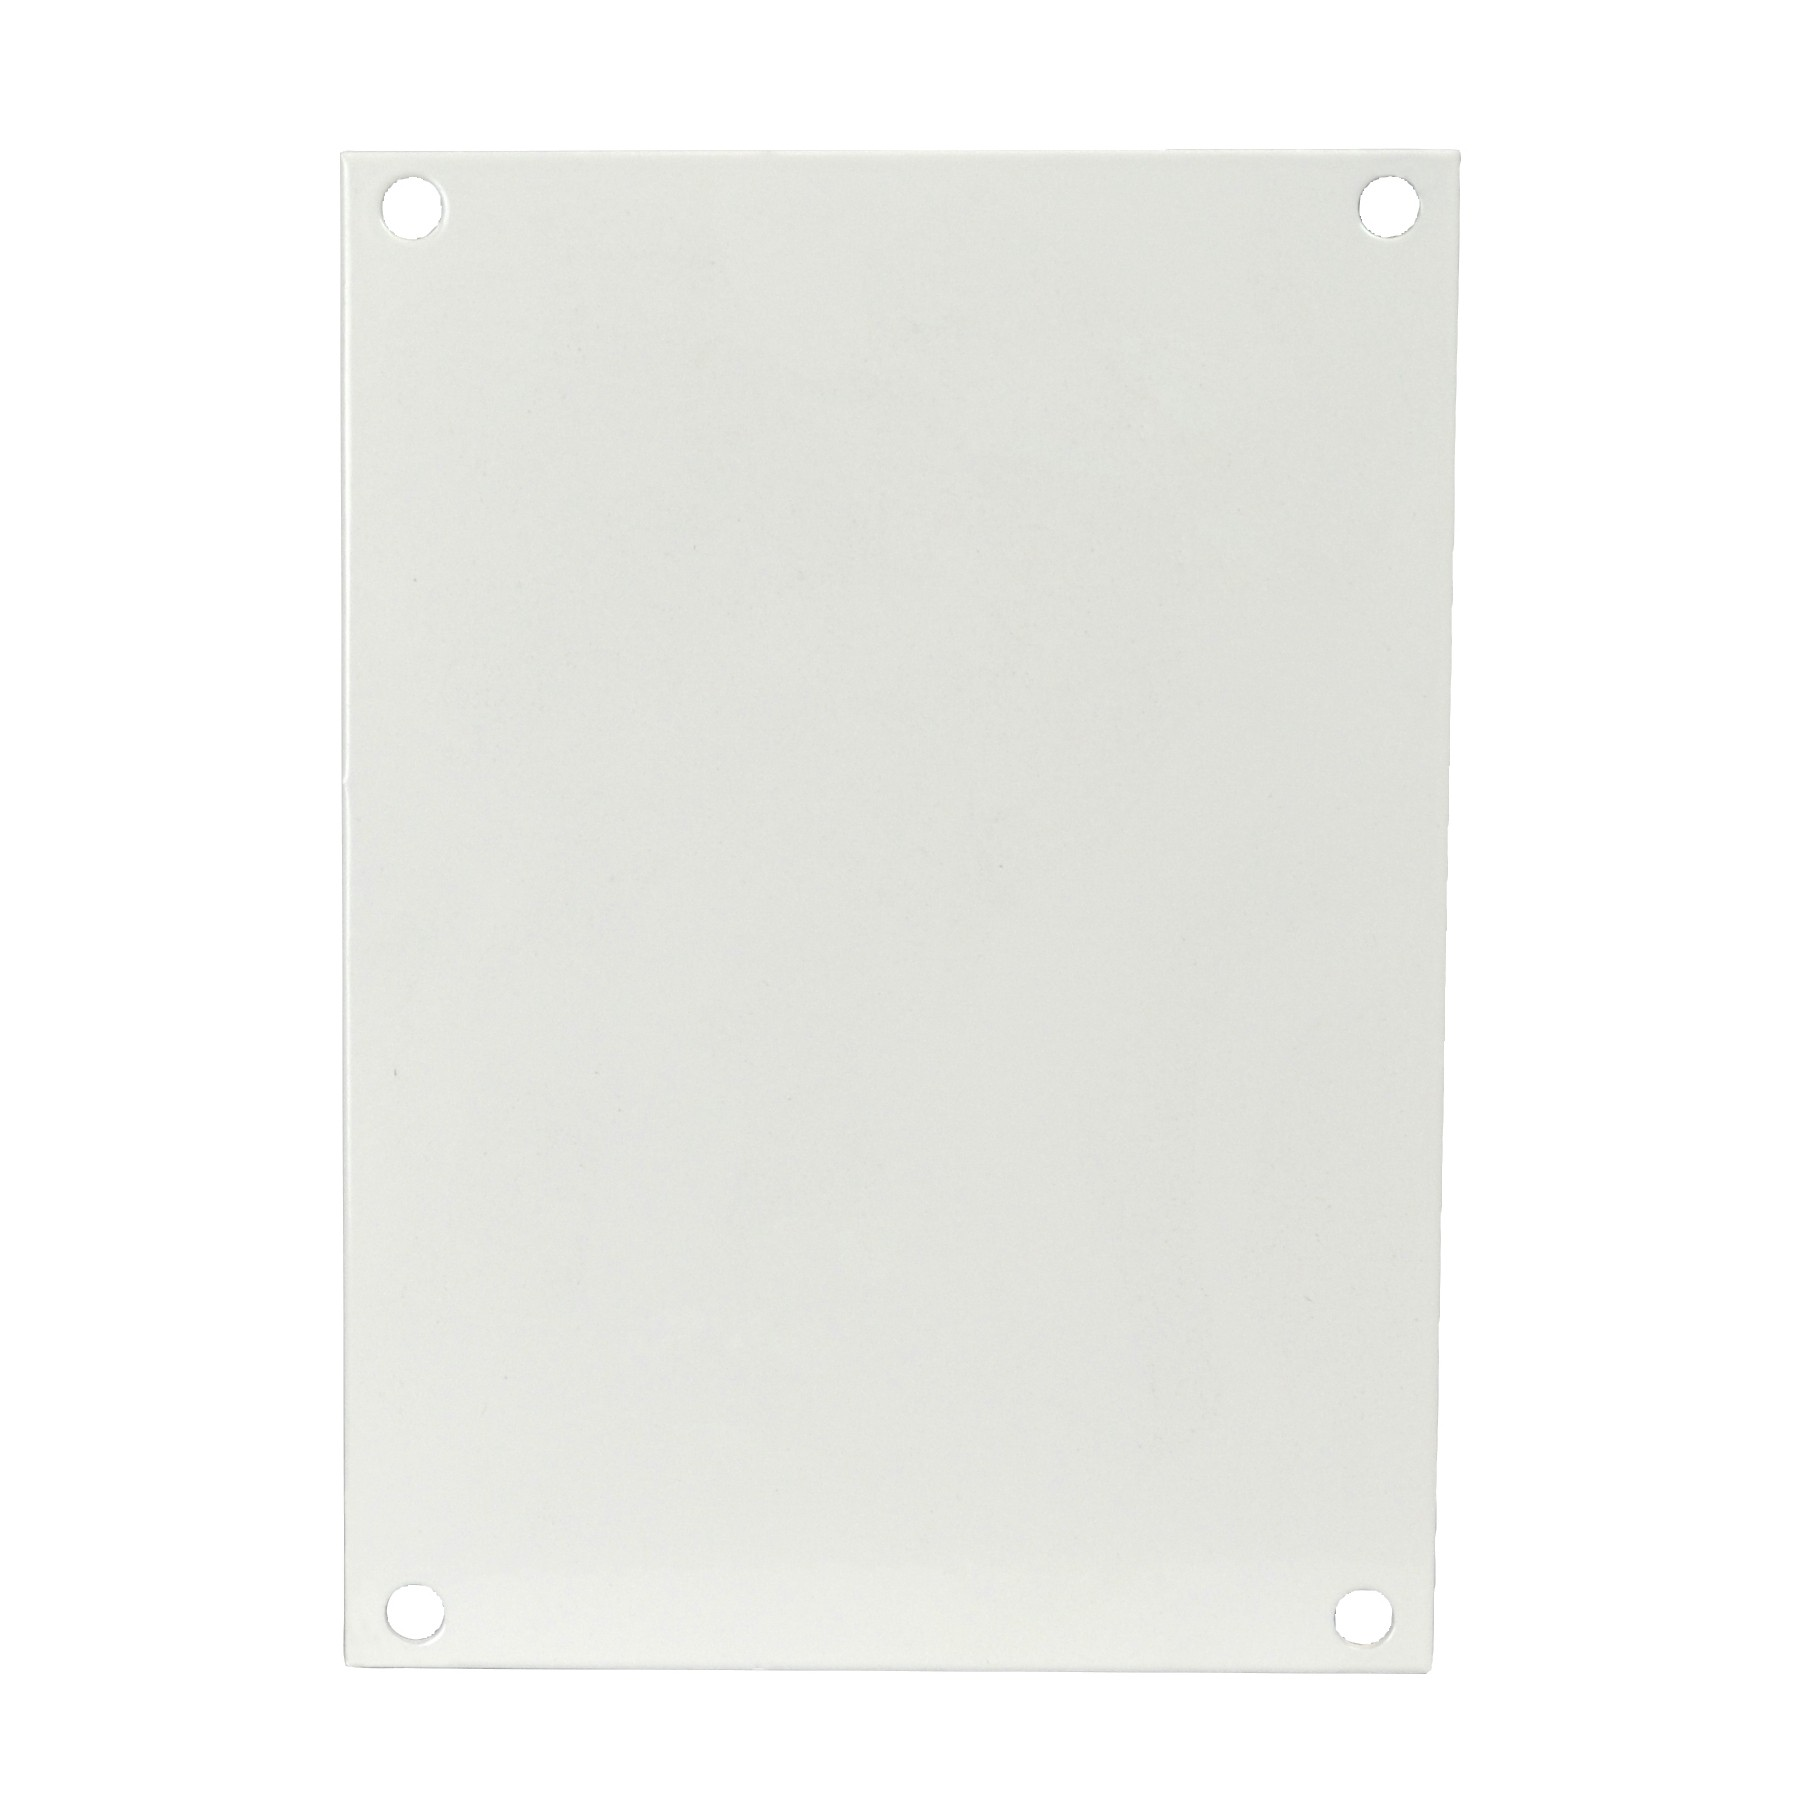 "Carbon Steel Back Panel for 18"" x 16"" Enclosures"